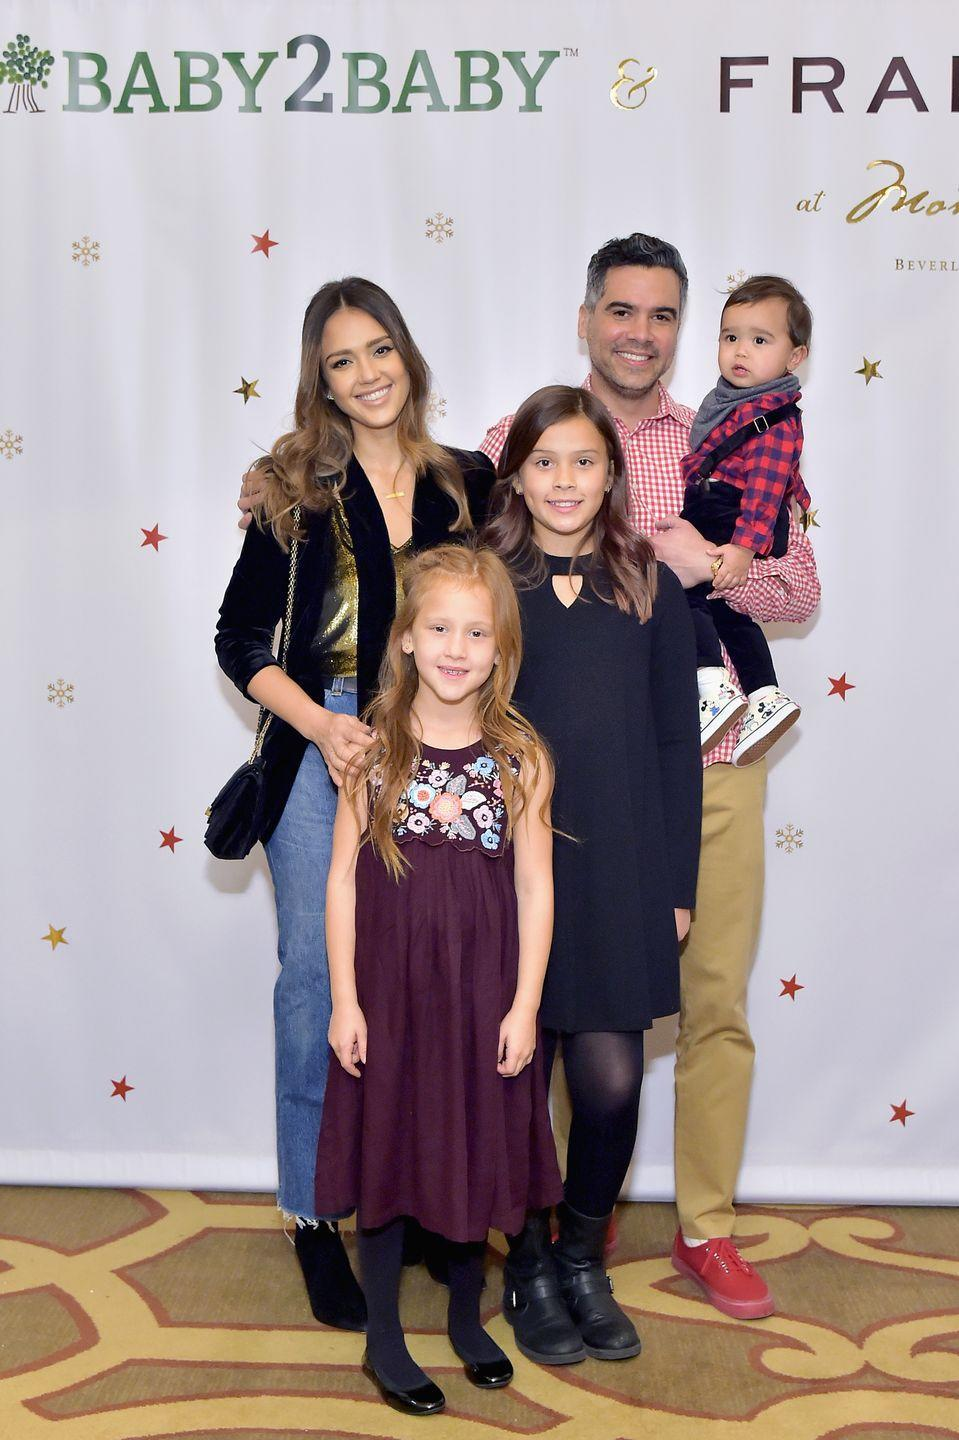 """<p>It can be different for everyone, but for Jessica that means having plenty of family time. 'You know, spending time with my kids kind of does take all the stress away, weirdly,' she told <a href=""""https://www.womenshealthmag.com/life/a19939060/jessica-alba-q-and-a/"""" rel=""""nofollow noopener"""" target=""""_blank"""" data-ylk=""""slk:WomensHealthMag.com"""" class=""""link rapid-noclick-resp"""">WomensHealthMag.com</a>. 'I'm in the moment with them. They make me so happy, they're pure joy. I know they're not going to be little forever, so I really soak up as much as I possibly can with them. That's kind of how I de-stress.'<br></p>"""